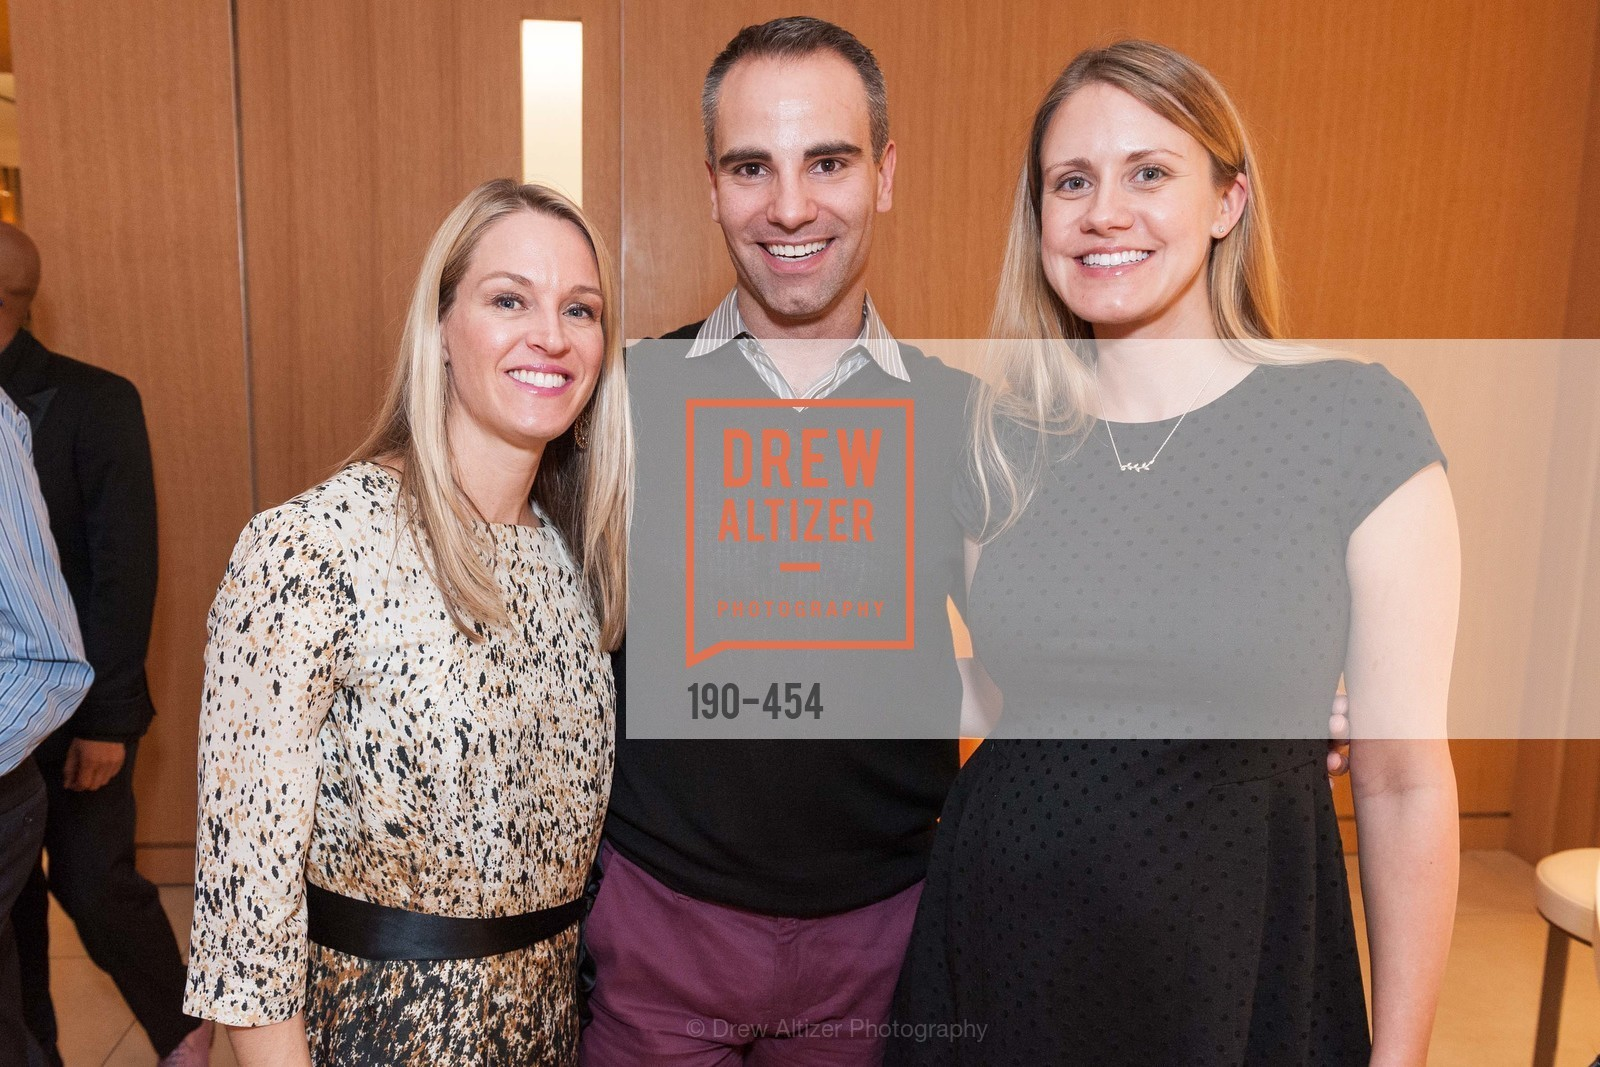 Julia Nottebohm, Darren Anderson, Ingrid Roman, 2014 SAN FRANCISCO BALLET ENCORE! Kick-Off Party, US. Nespresso Boutique Bar, 90 Grant Avenue, January 7th, 2014,Drew Altizer, Drew Altizer Photography, full-service agency, private events, San Francisco photographer, photographer california